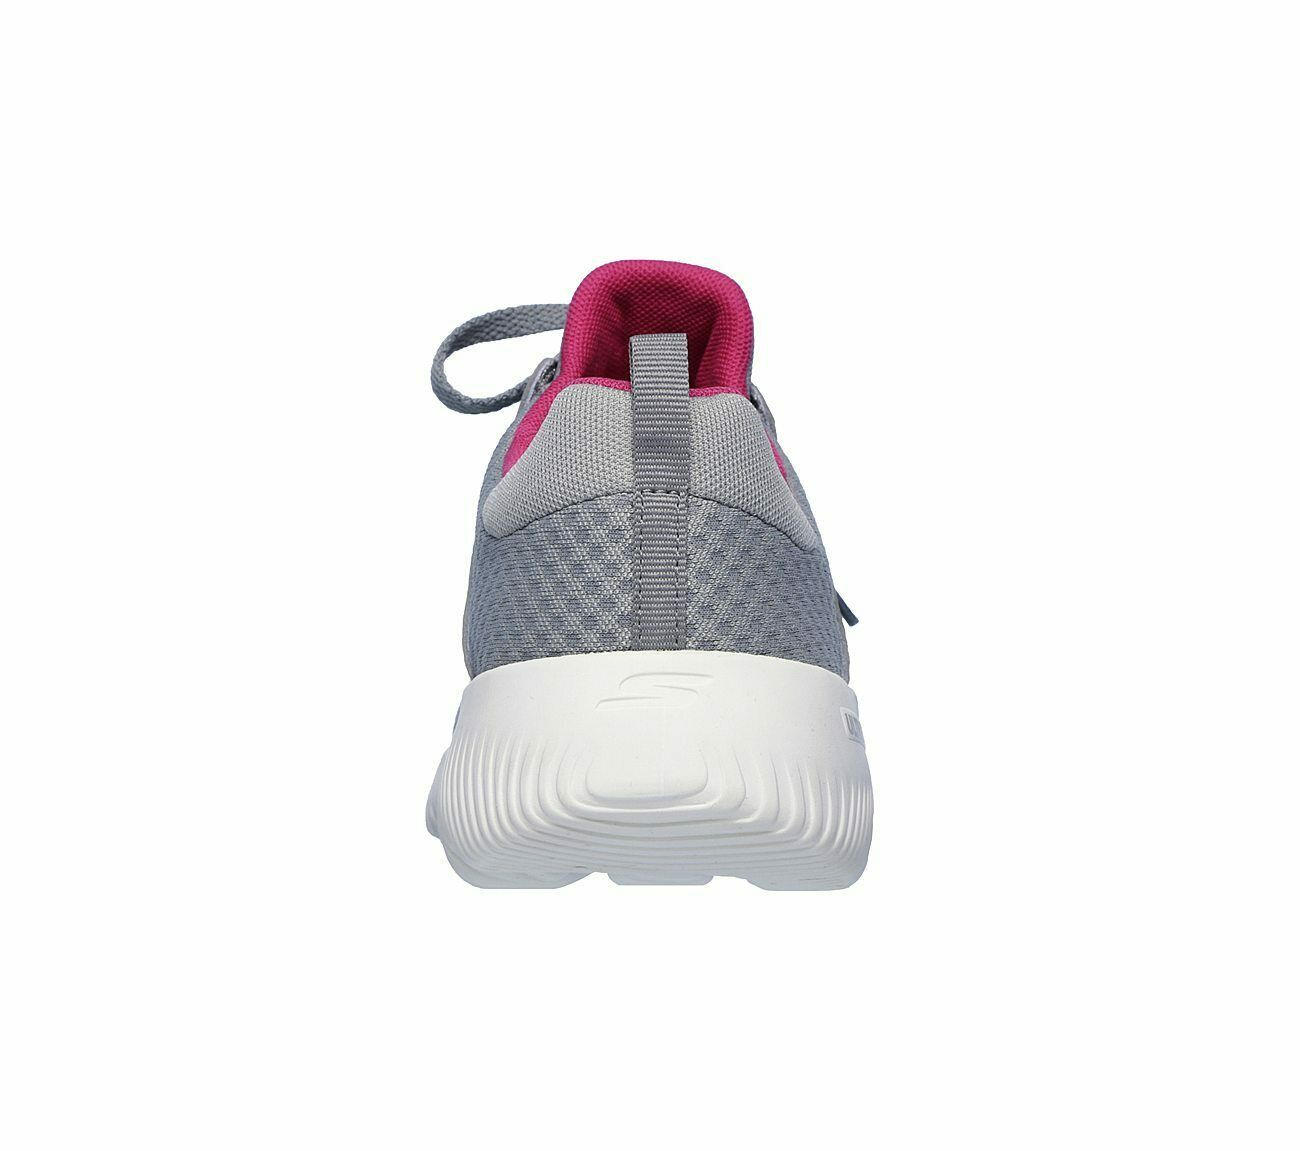 Skechers Gray Pink shoes Women's Sport Go Run Athletic Mesh Comfort Casual 15162 image 6